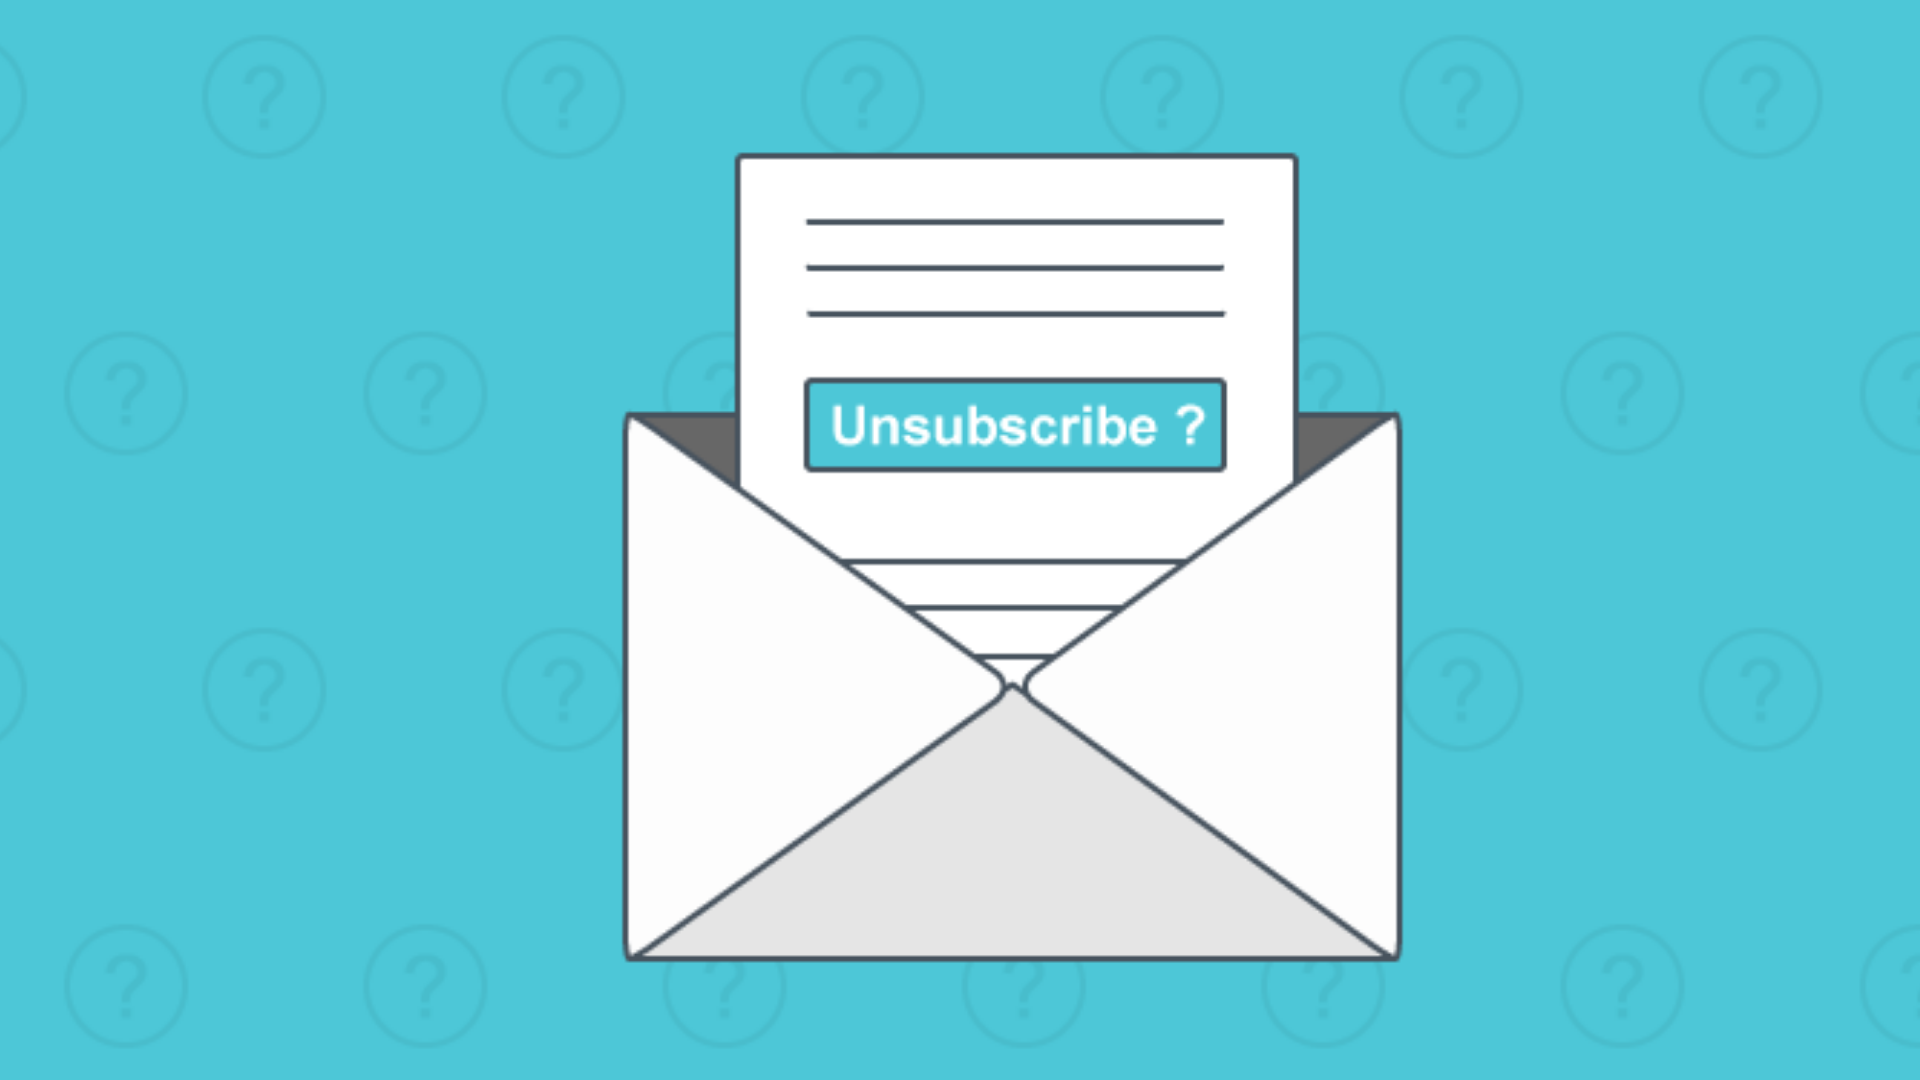 Unsubscribe-Link